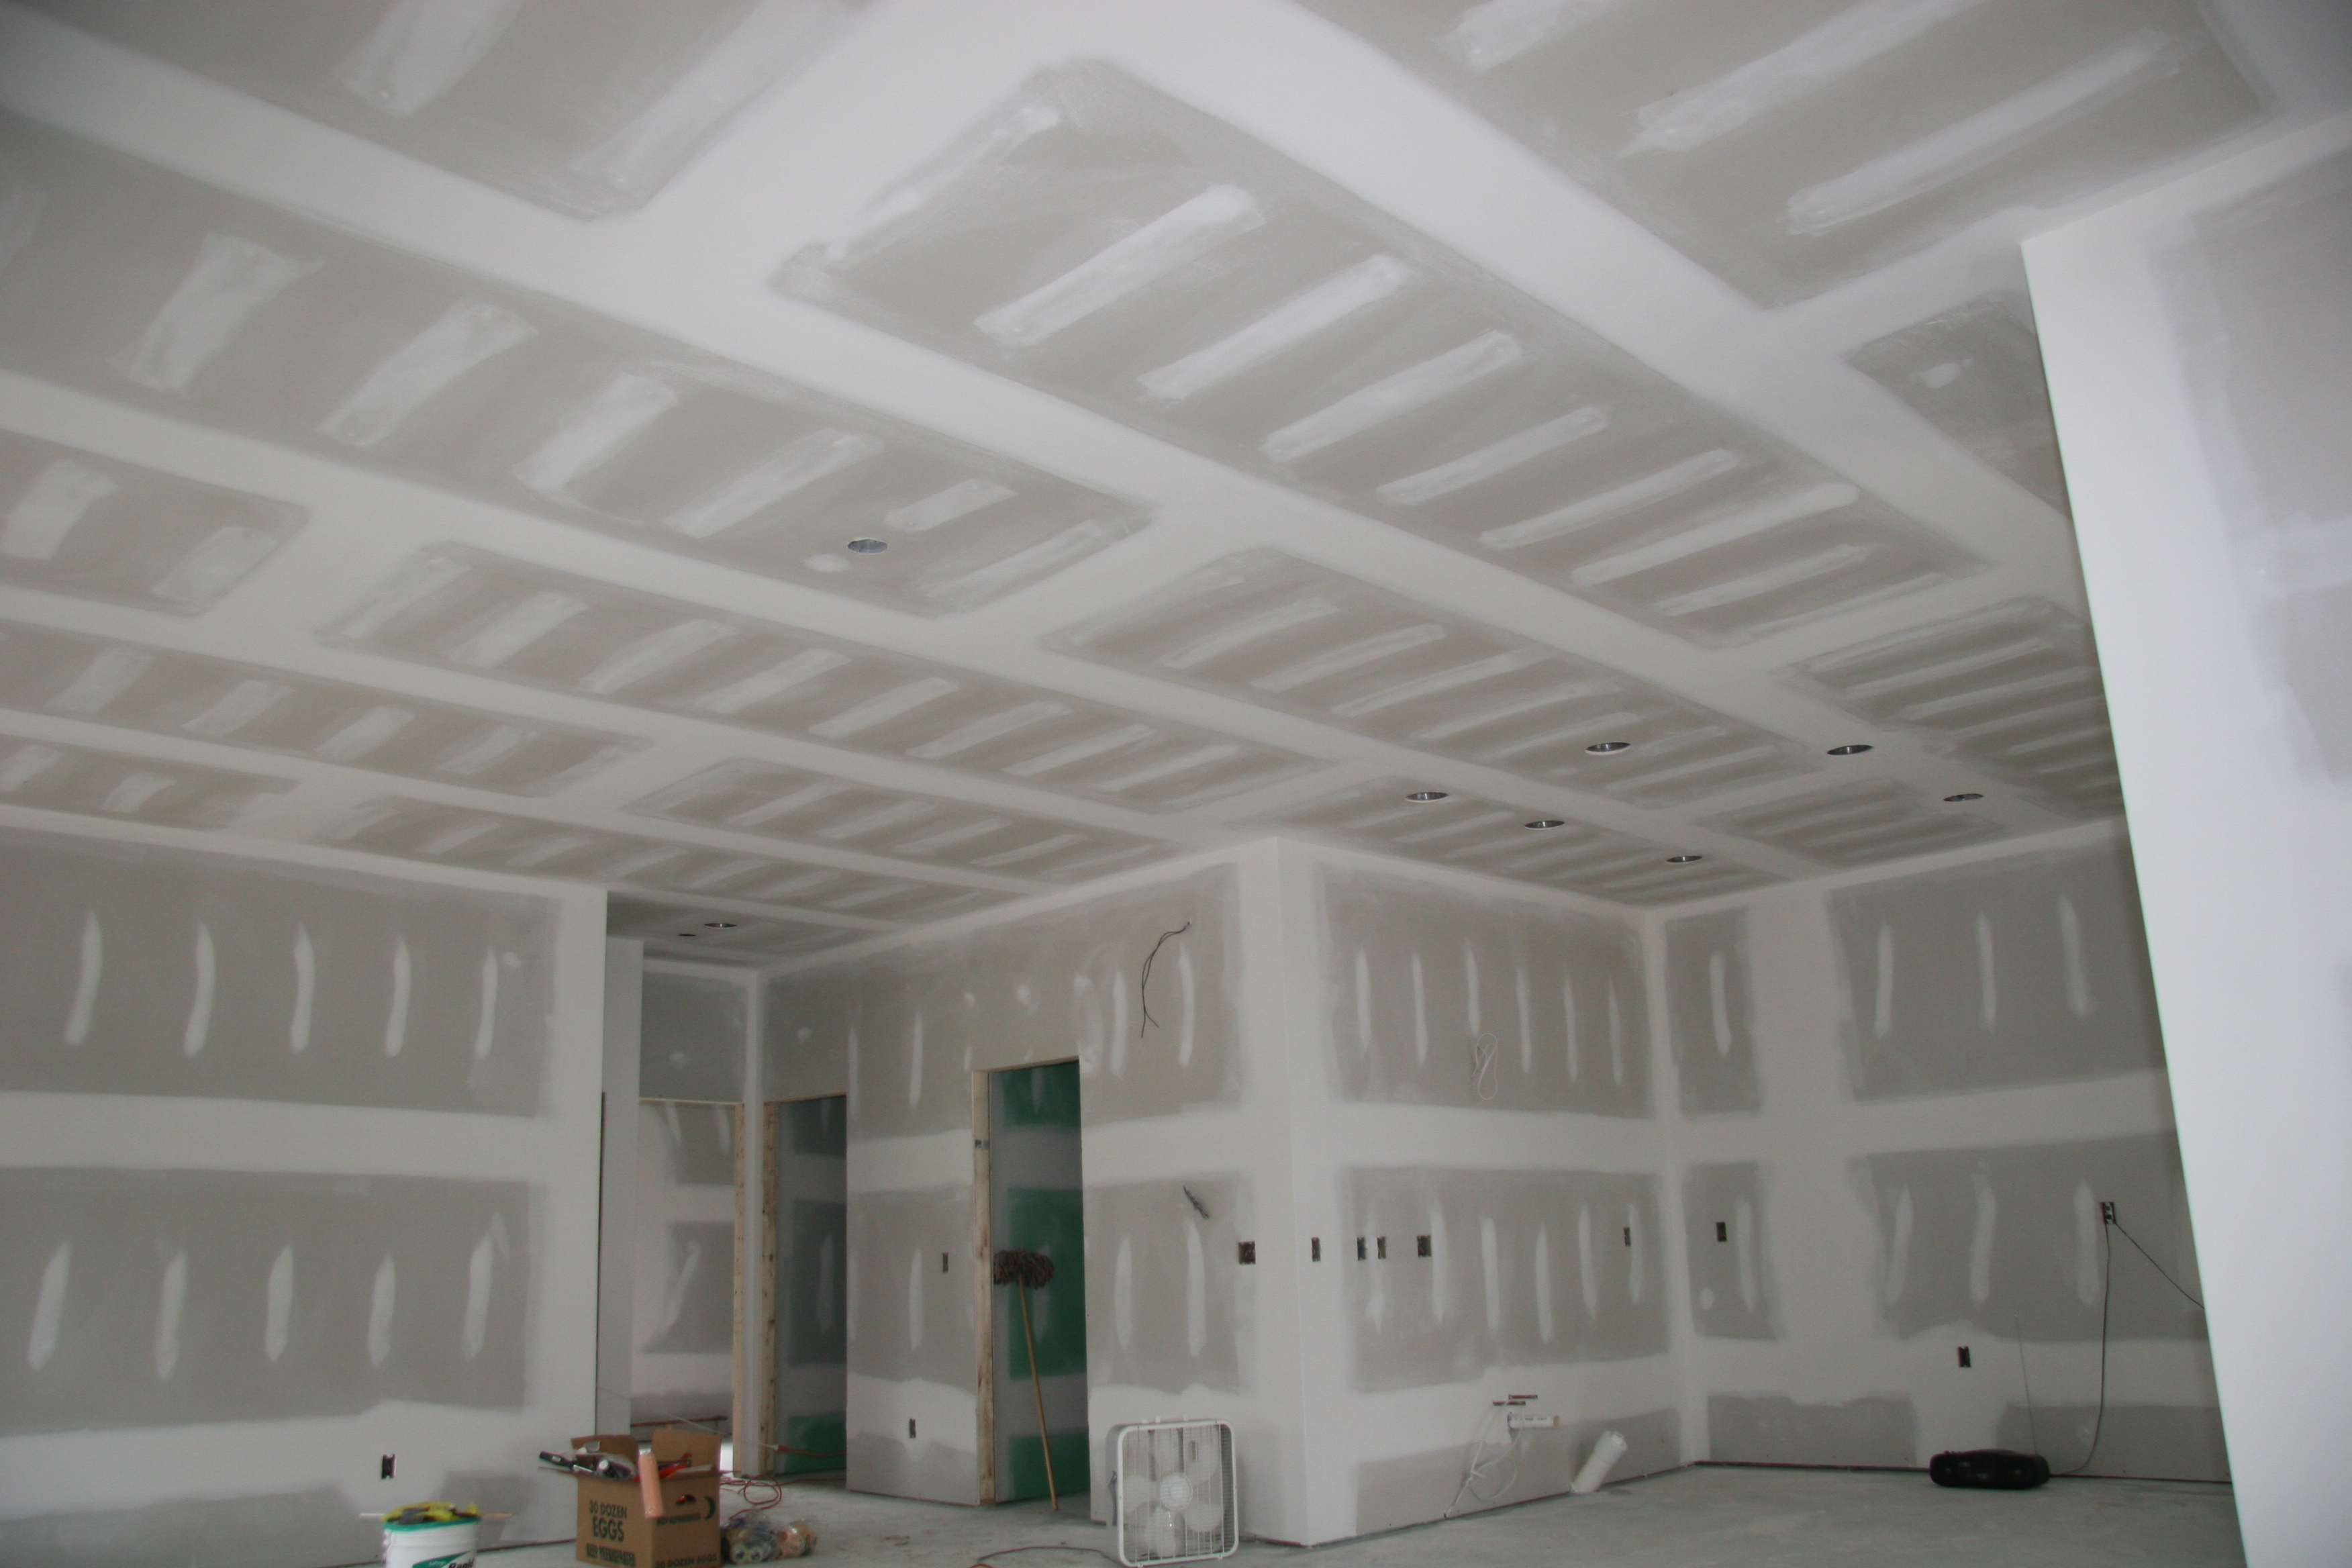 Best practices in finishing drywall